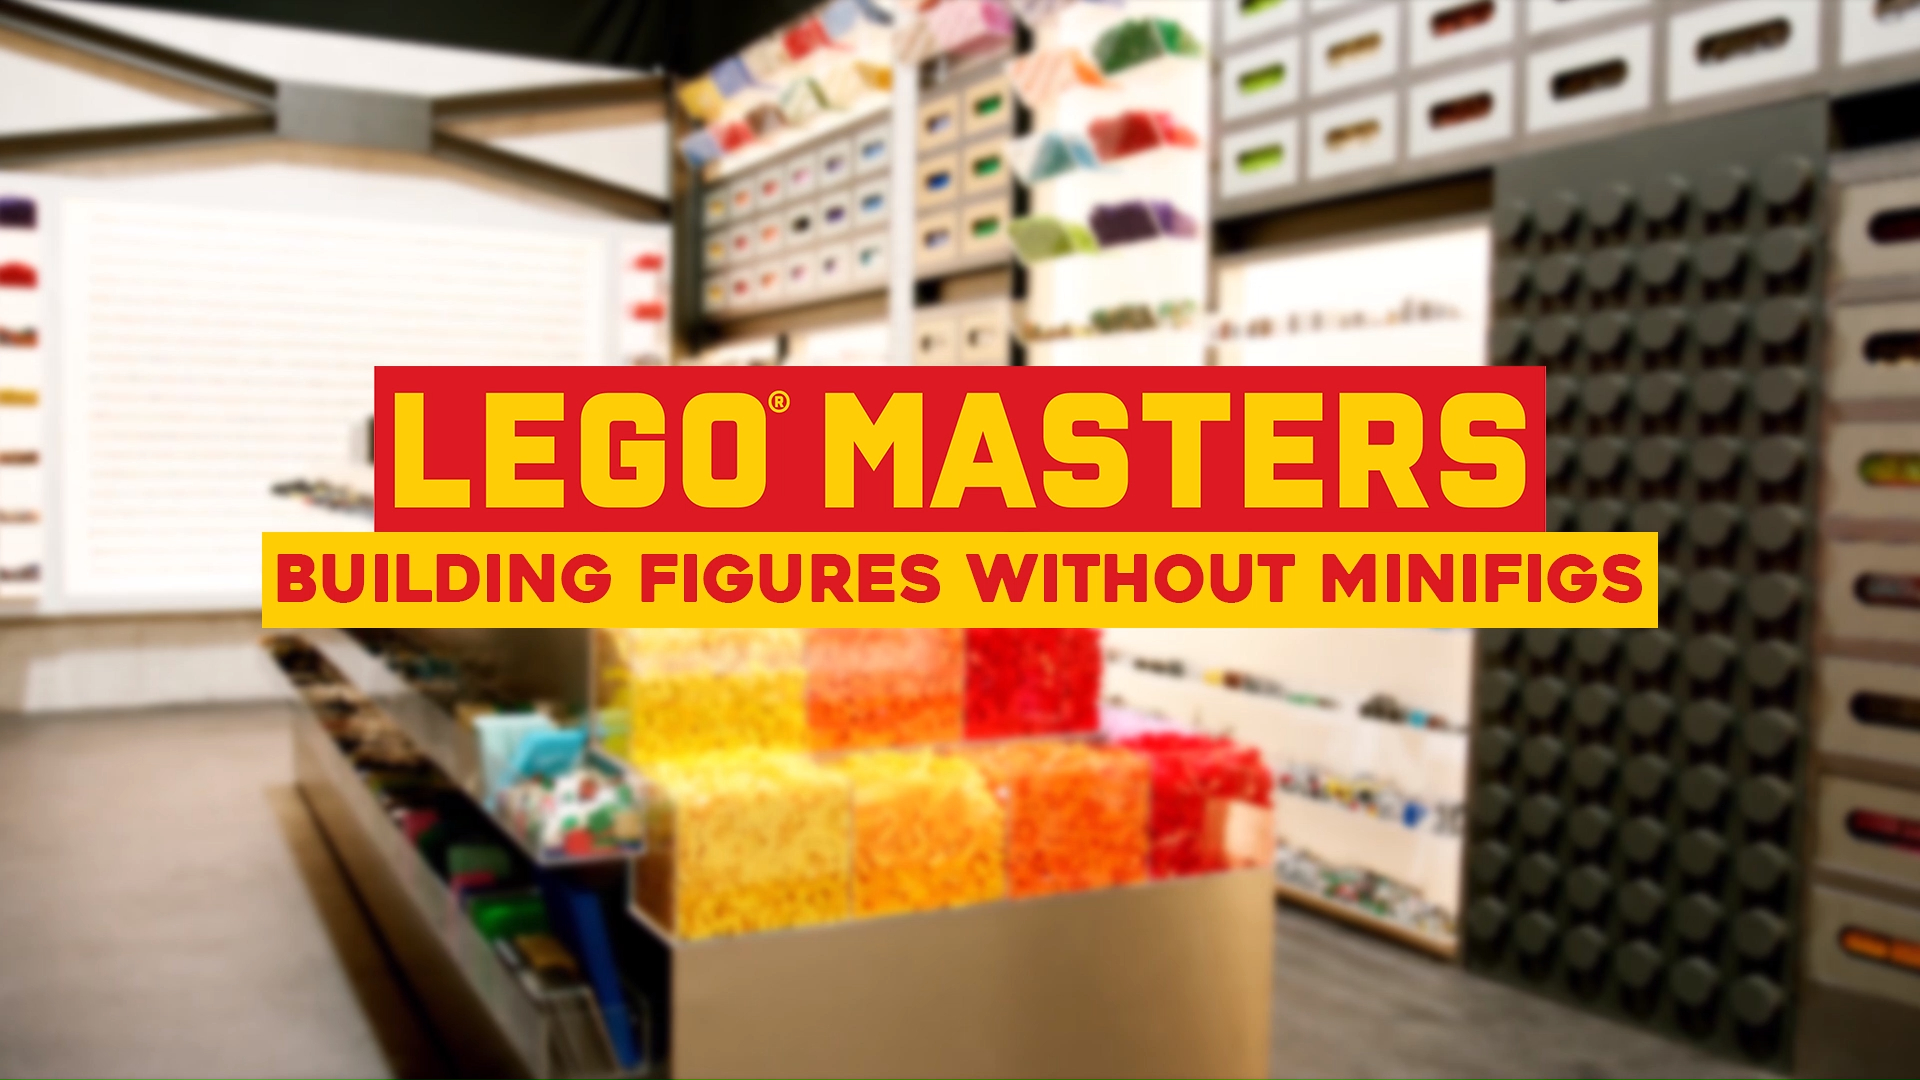 LEGO Tips, Tricks and Hacks: Building figures without minifigs